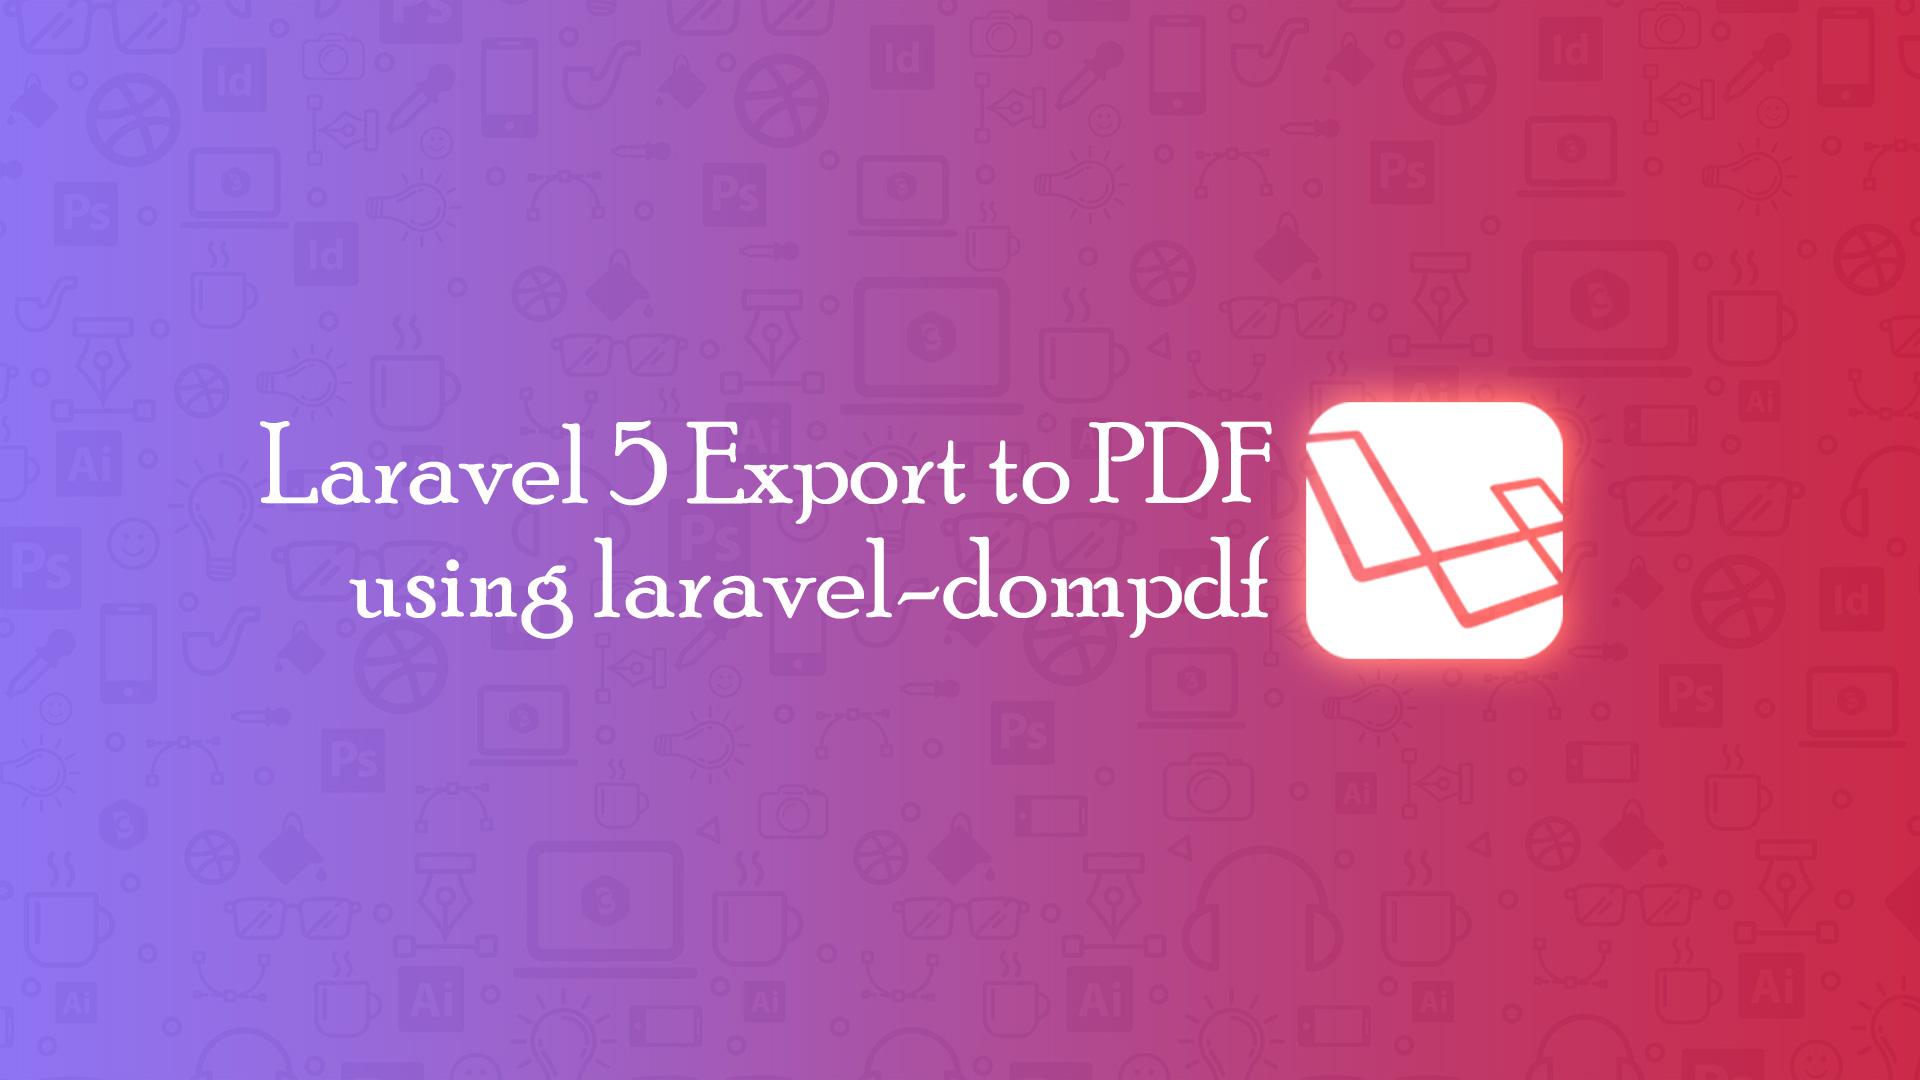 Laravel 5 Export to PDF using laravel-dompdf - Code Briefly